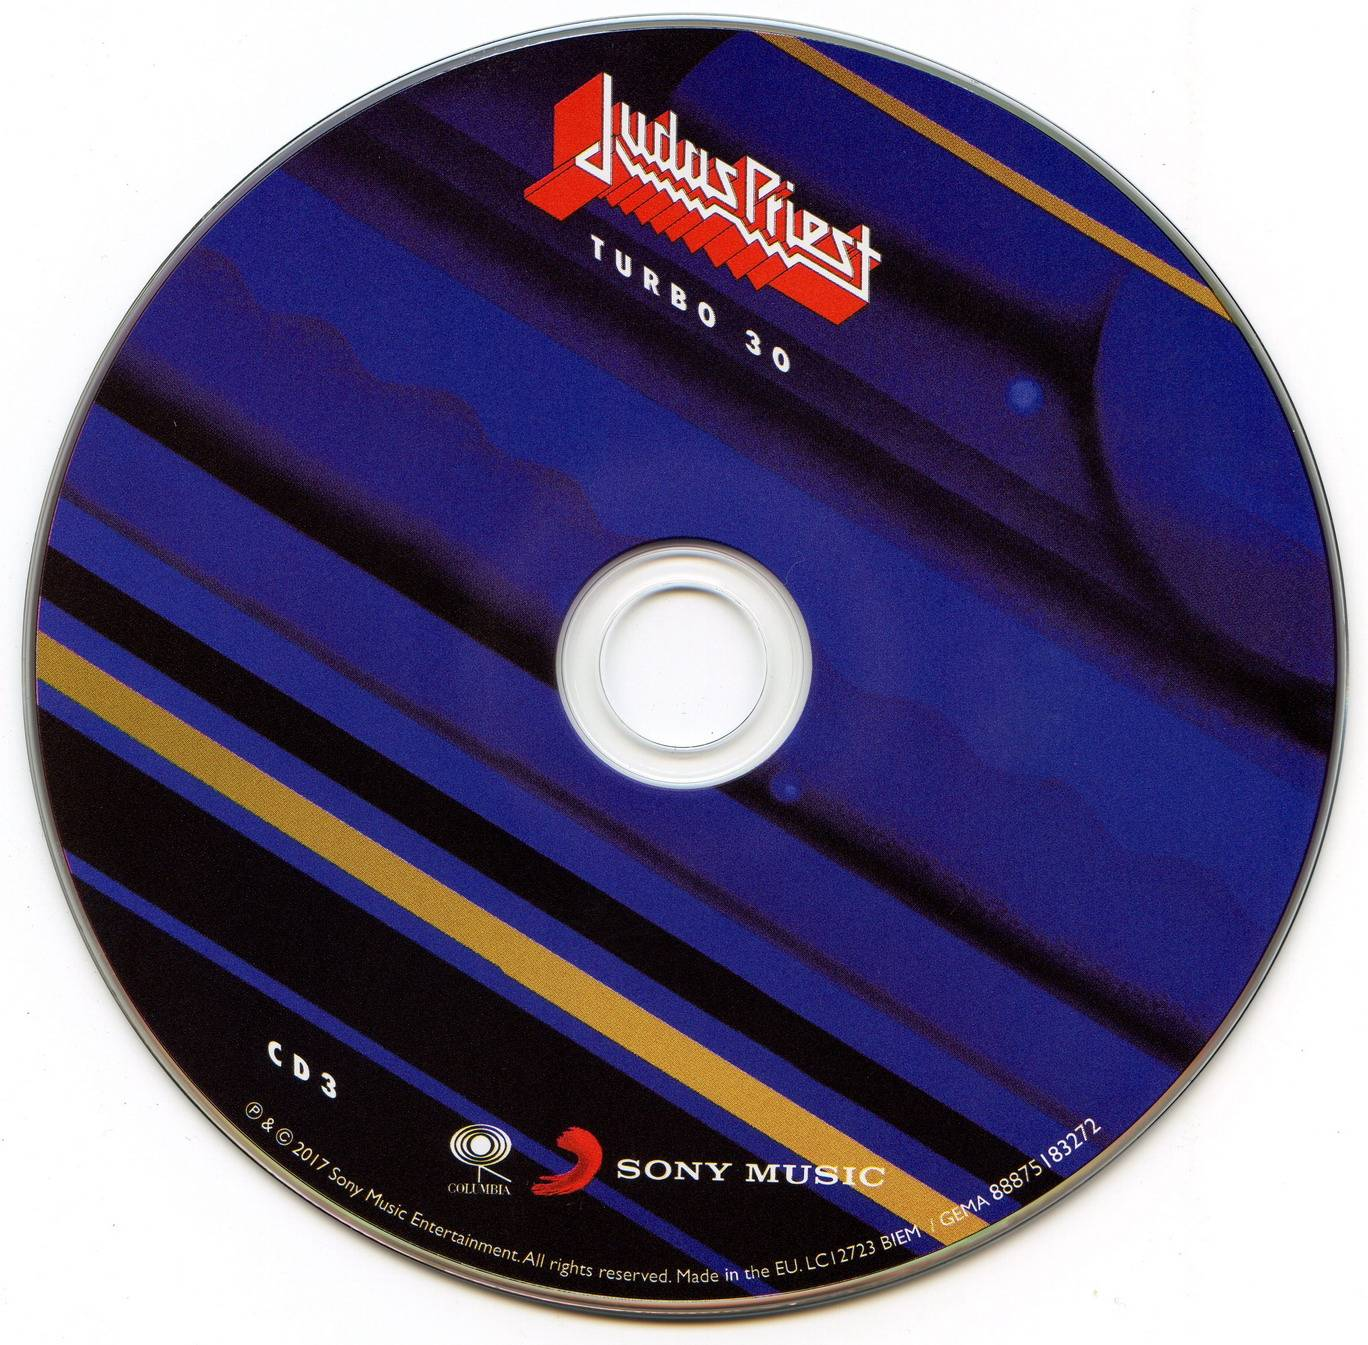 Judas Priest - Turbo 30 (Remastered 30th Anniversary Deluxe Edition) (1986/2017)